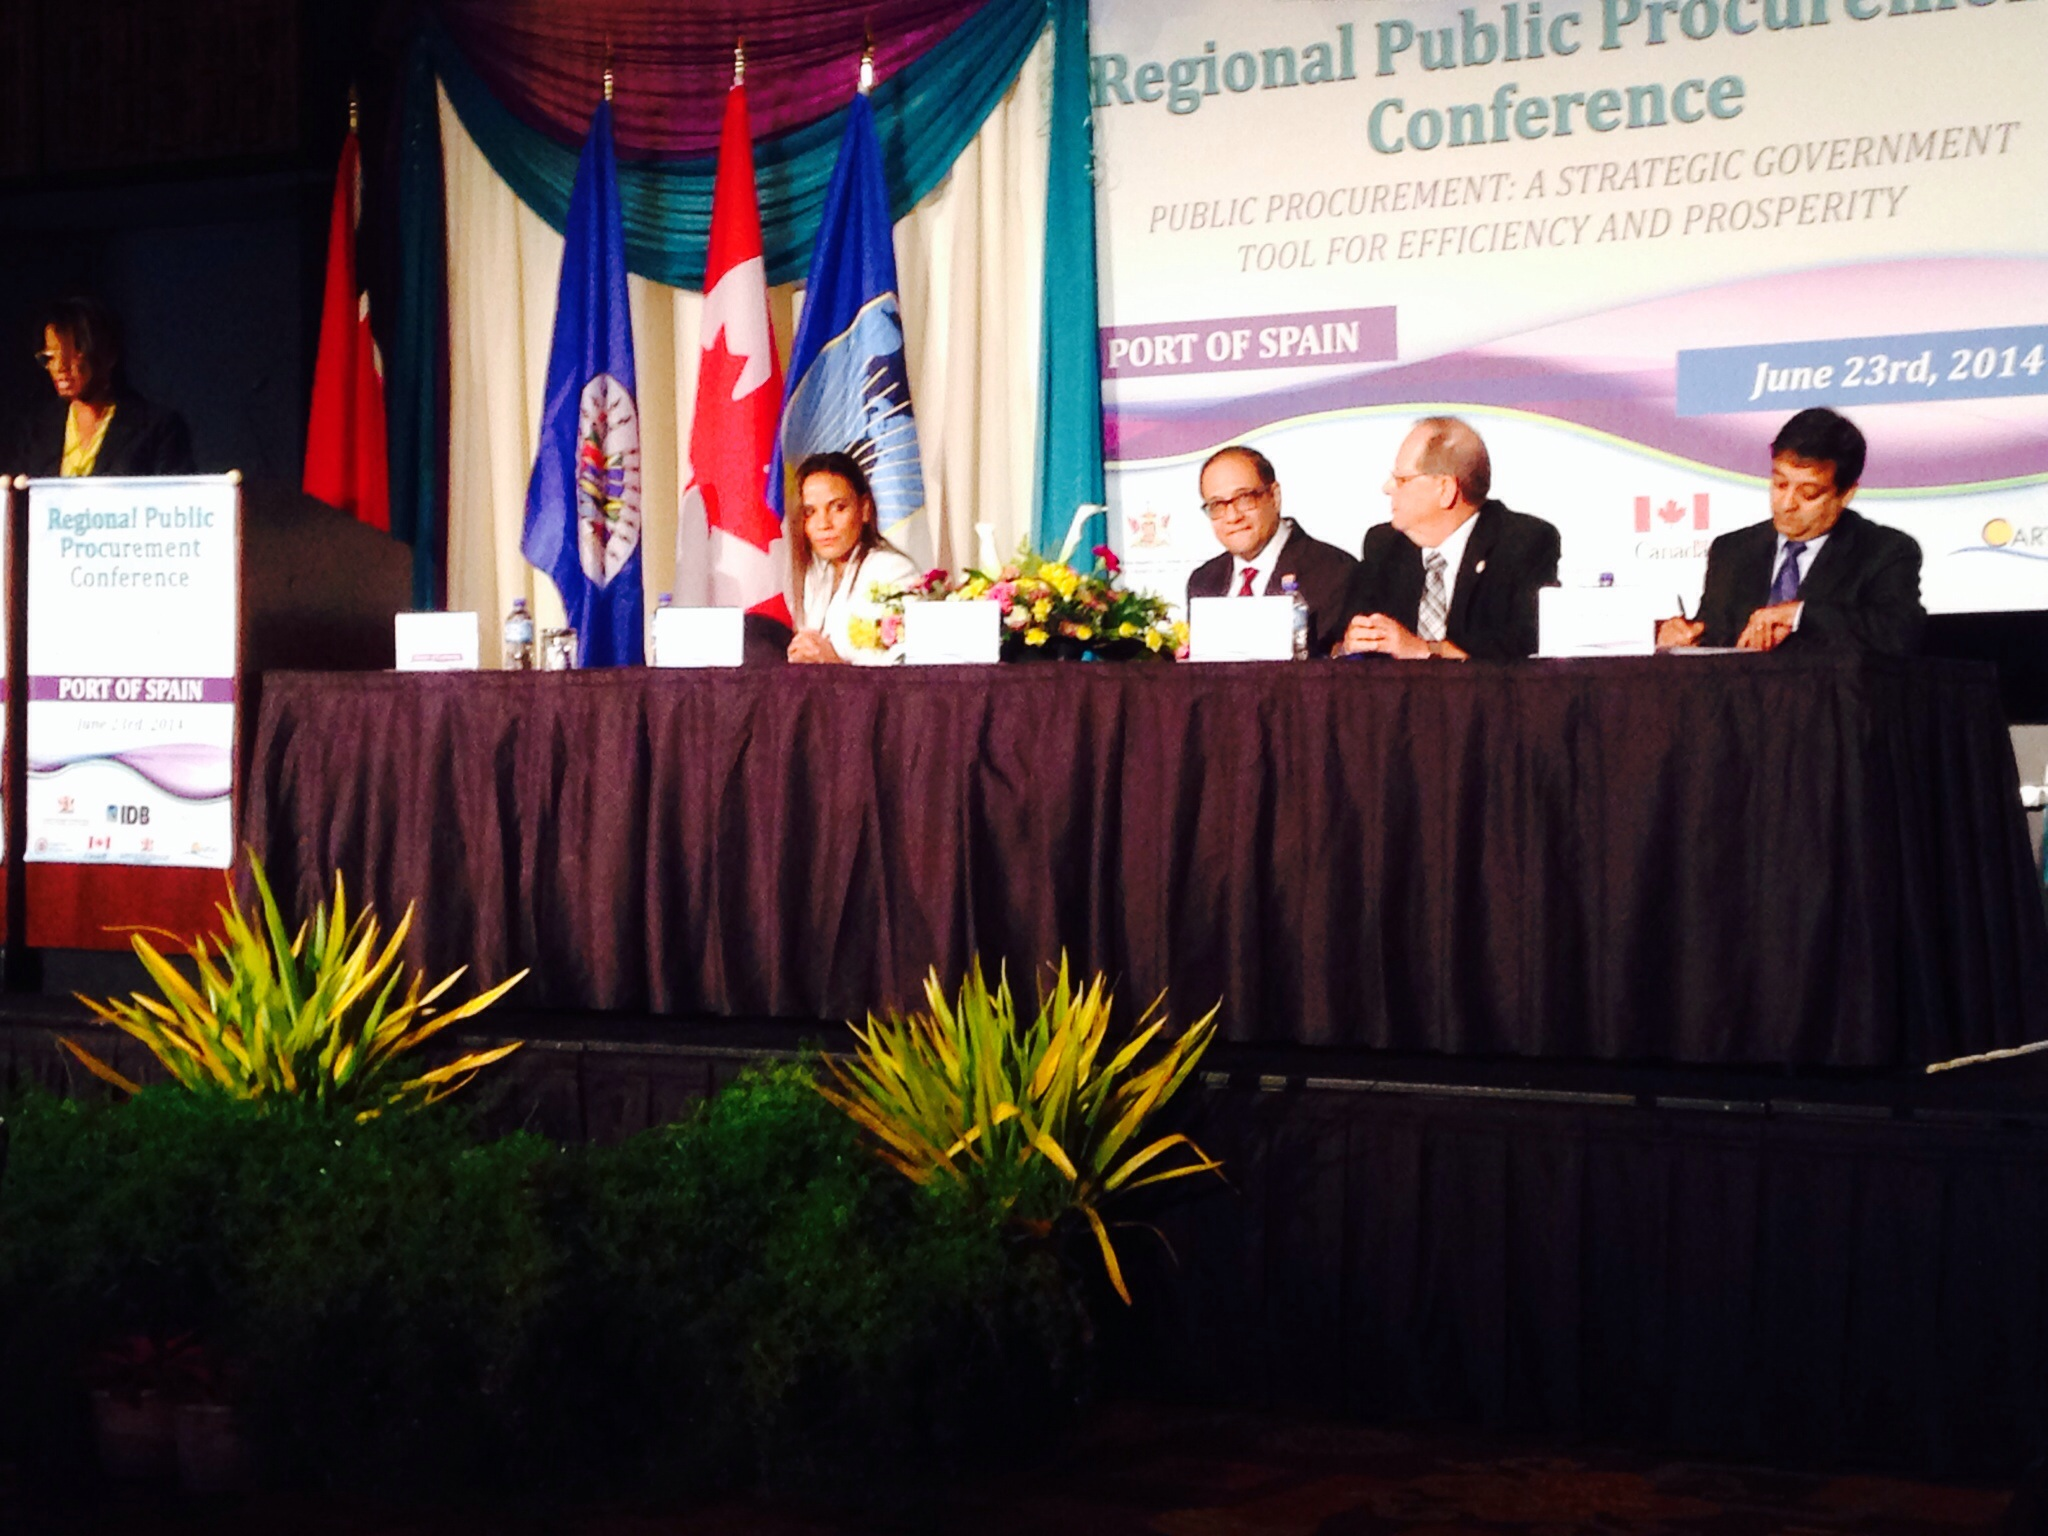 OAS supports Second Sub-regional Caribbean Public Procurement Conference of the Inter-American Network on Government Procurement (INGP), Hyatt Regency Hotel, Port of Spain, June 23, 2014